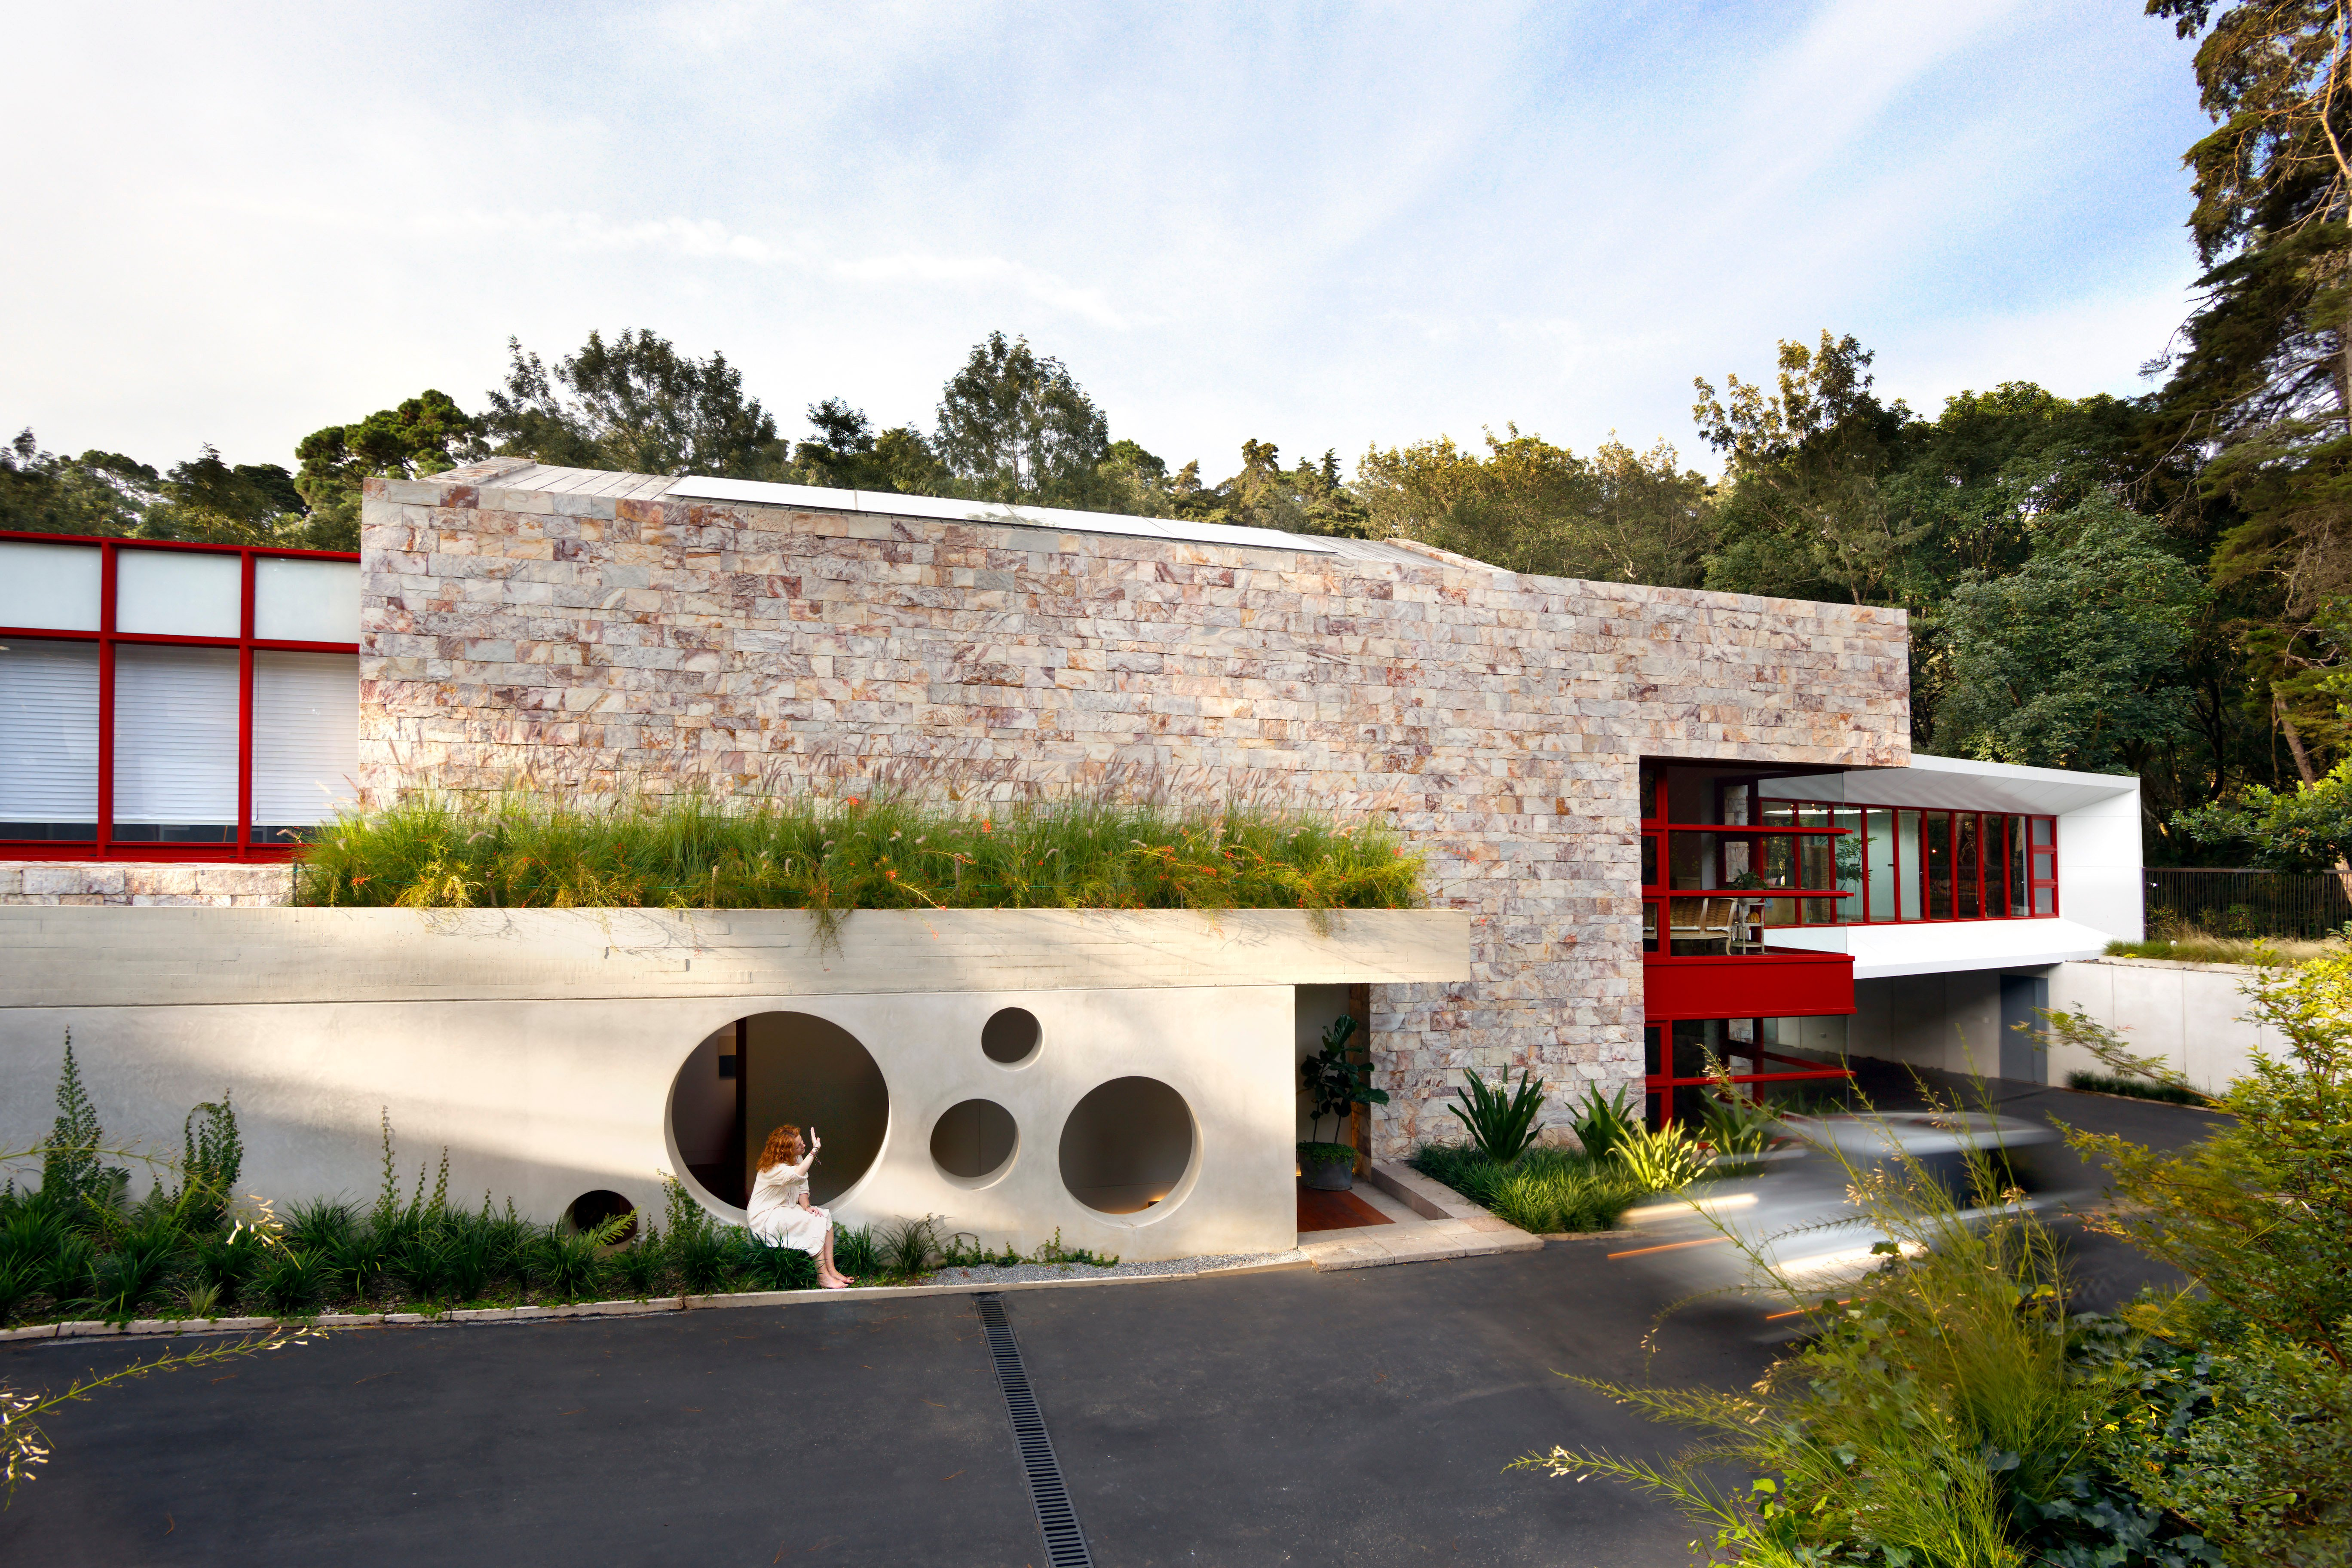 Seen from the front, the home is much more closed off and private, with a large unpolished stone wall dominating the view. Flanked by spreads of glass and red framing, we see a unique circular-cutout adorned entryway.